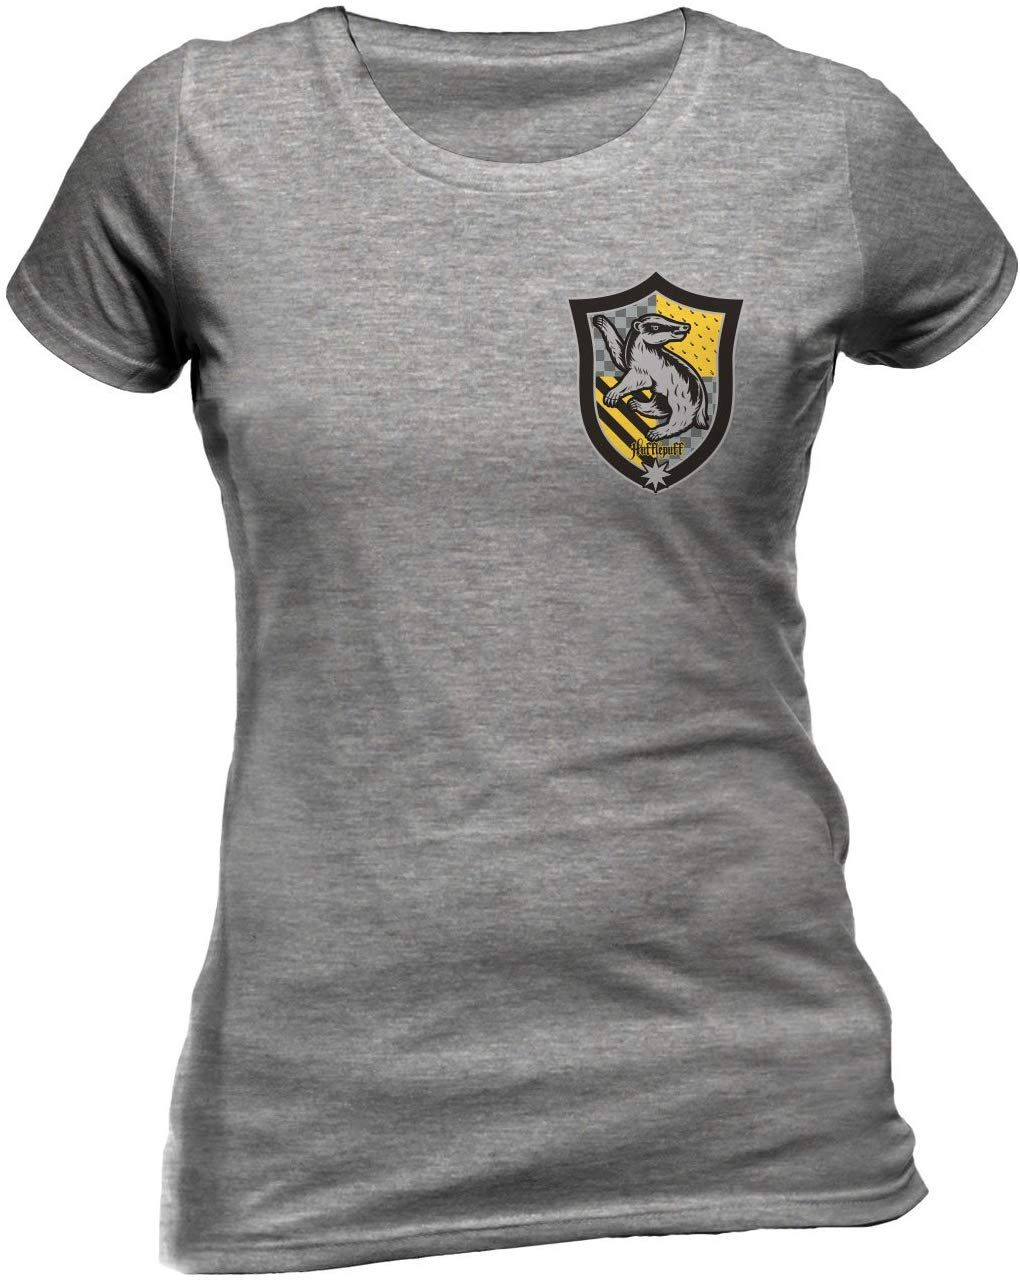 6019aa645 House Hufflepuff' Womens Fitted T-Shirt | ⚡Harry Potter ⚡ | Harry ...